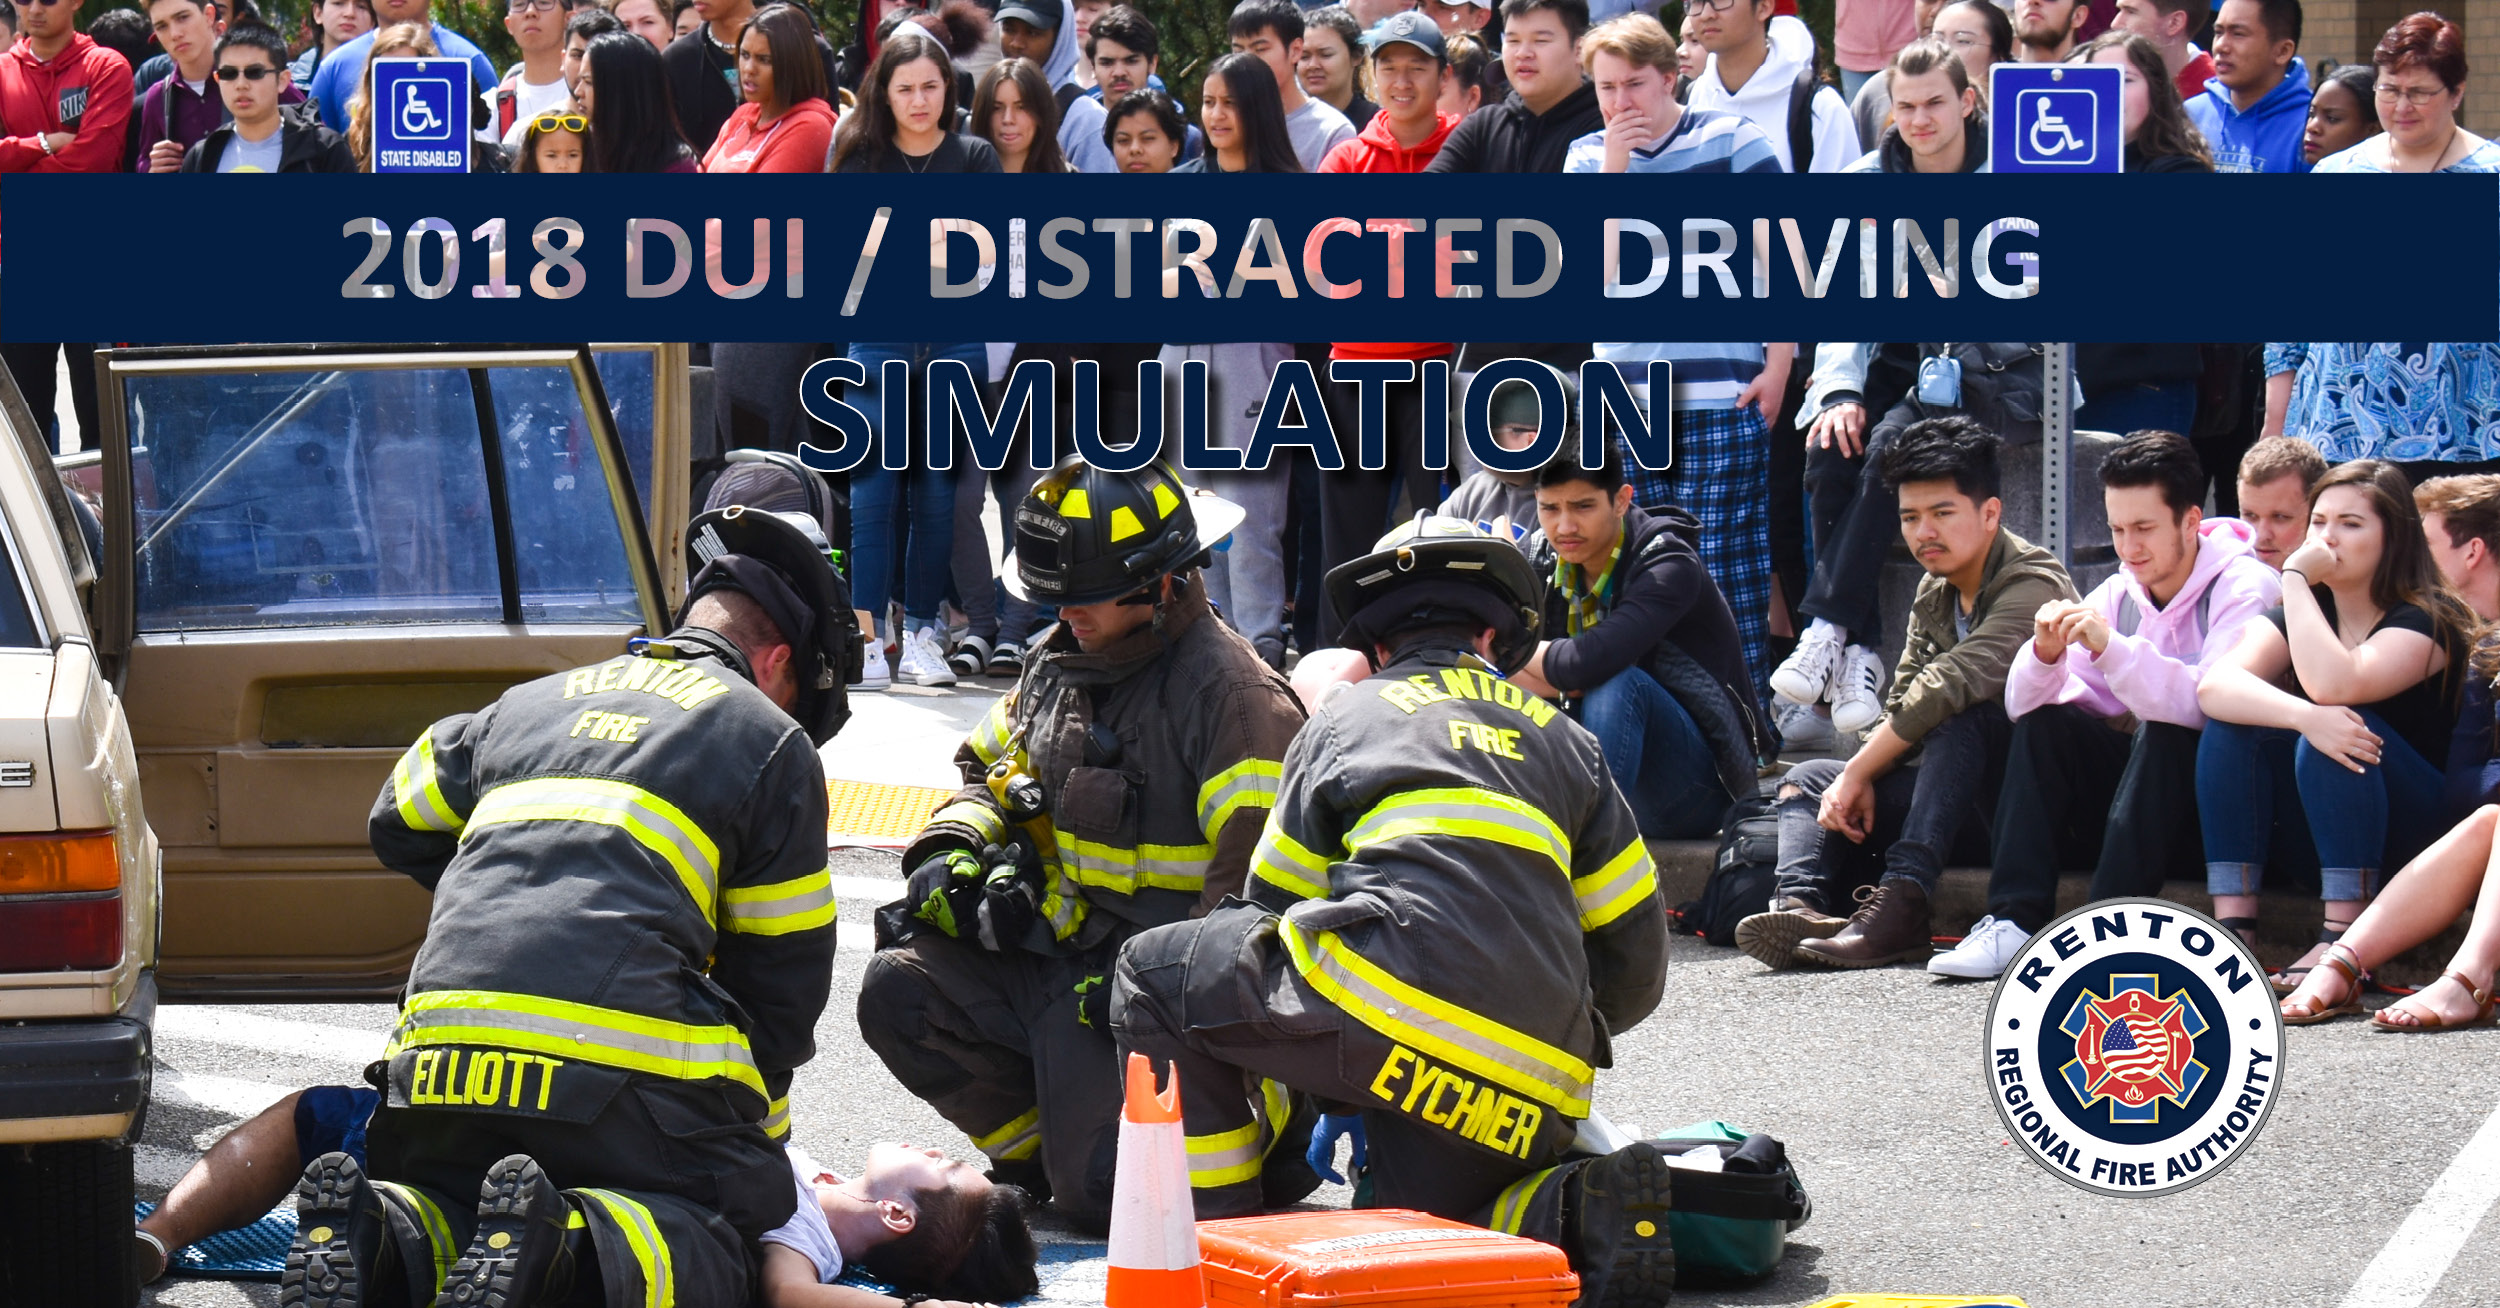 Renton RFA and Renton PD Team Up to Educate Students about Intoxicated and Distracted Driving